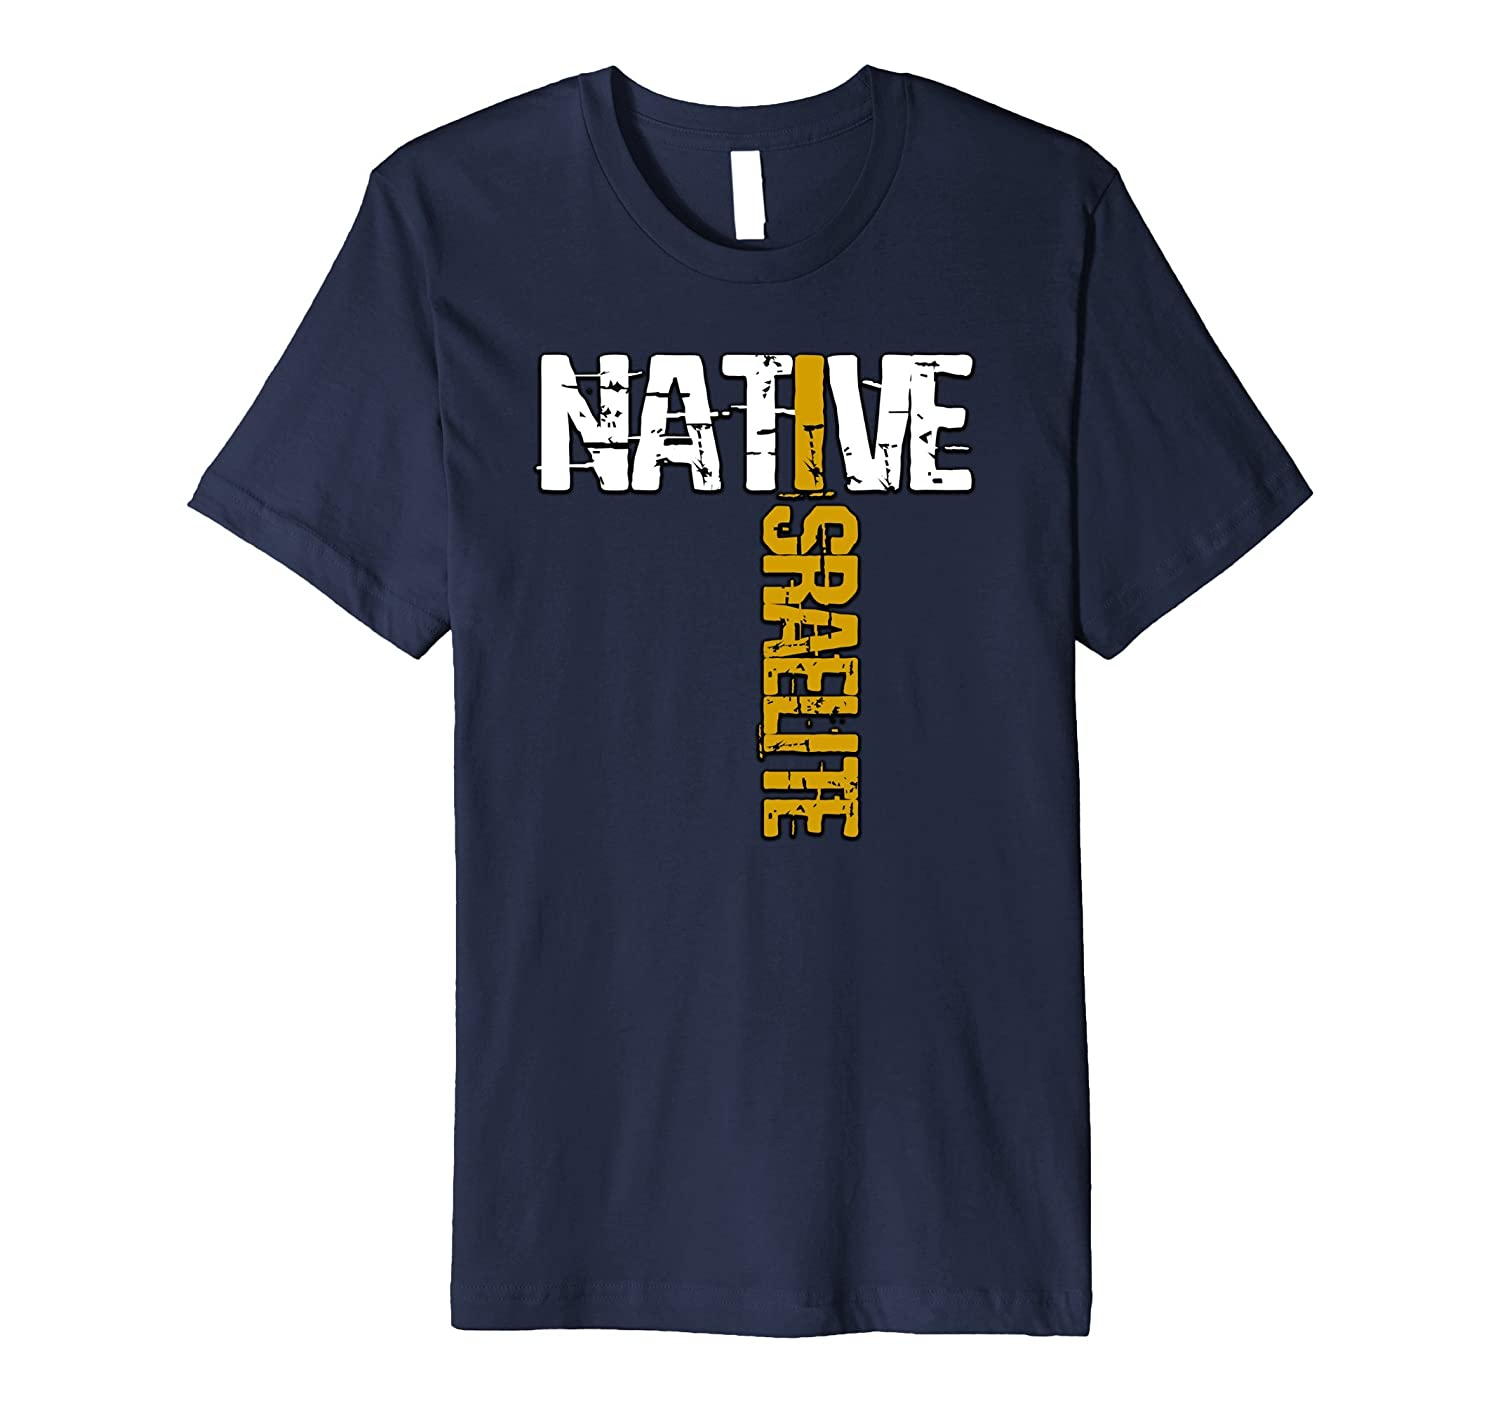 Hebrew Israelite Clothing 12 Tribes Native Israelite T-Shirt